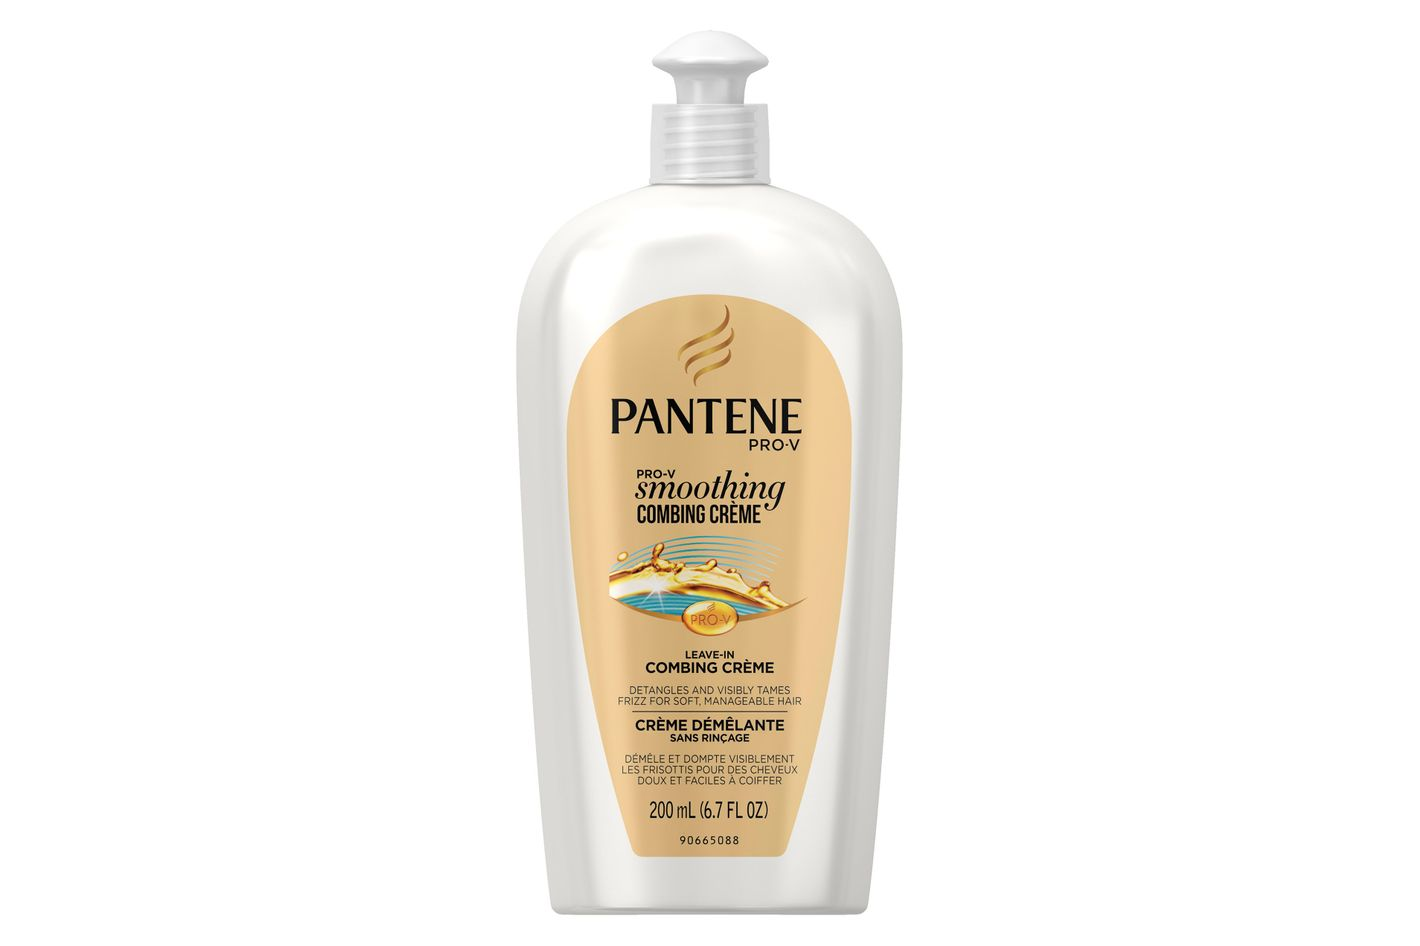 Pantene Smoothing Combing Cream